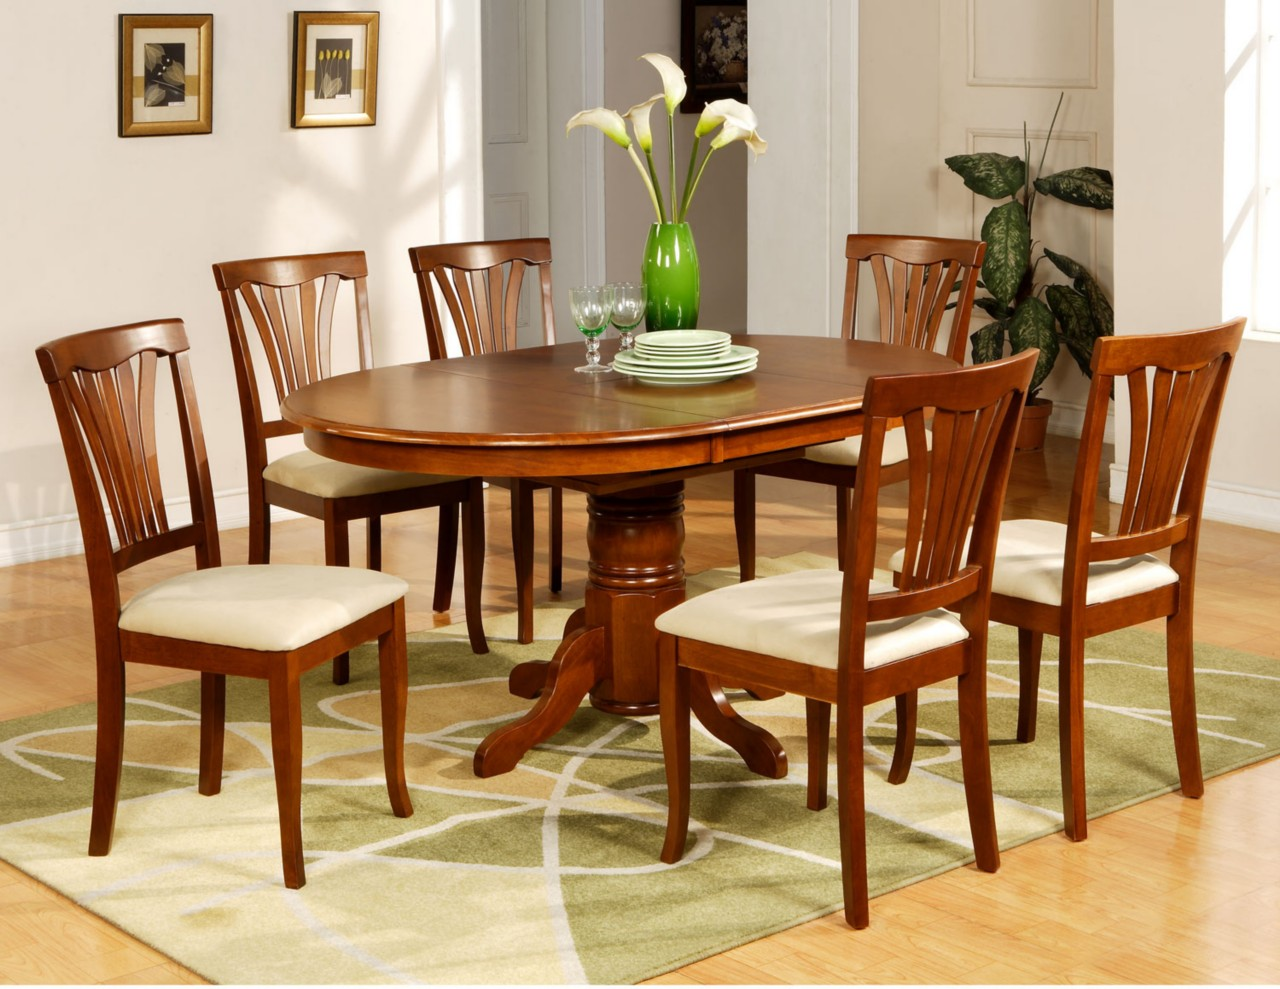 7 pc avon oval dinette kitchen dining room table with 6 for Dining room table for 6